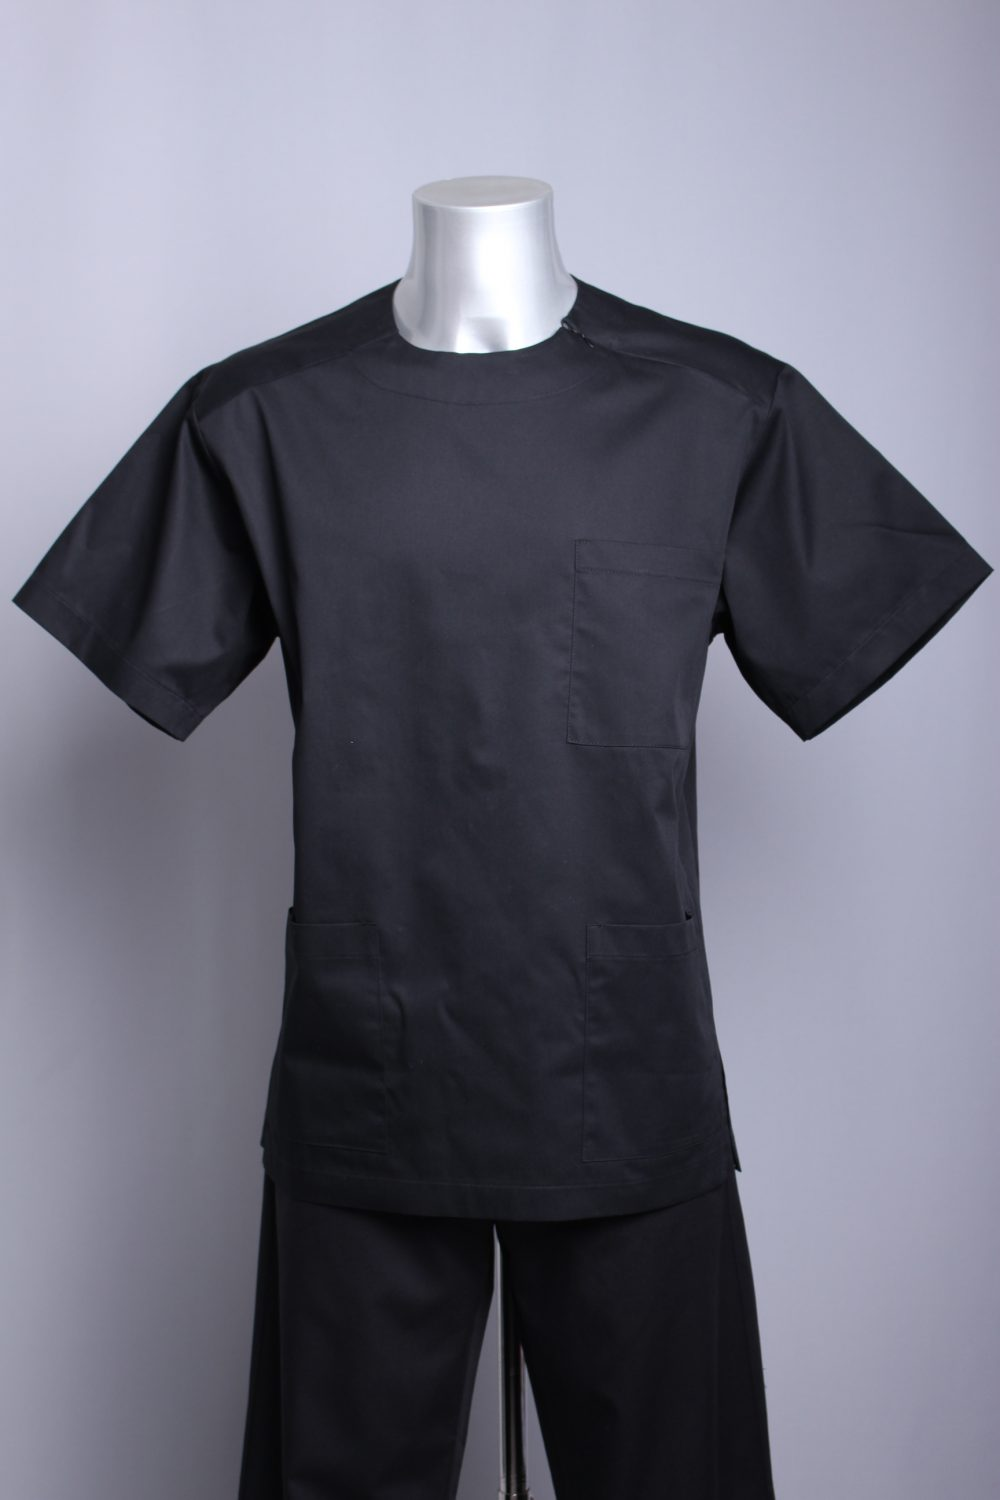 medical clothes, uniformes for wellmess, hairdresers